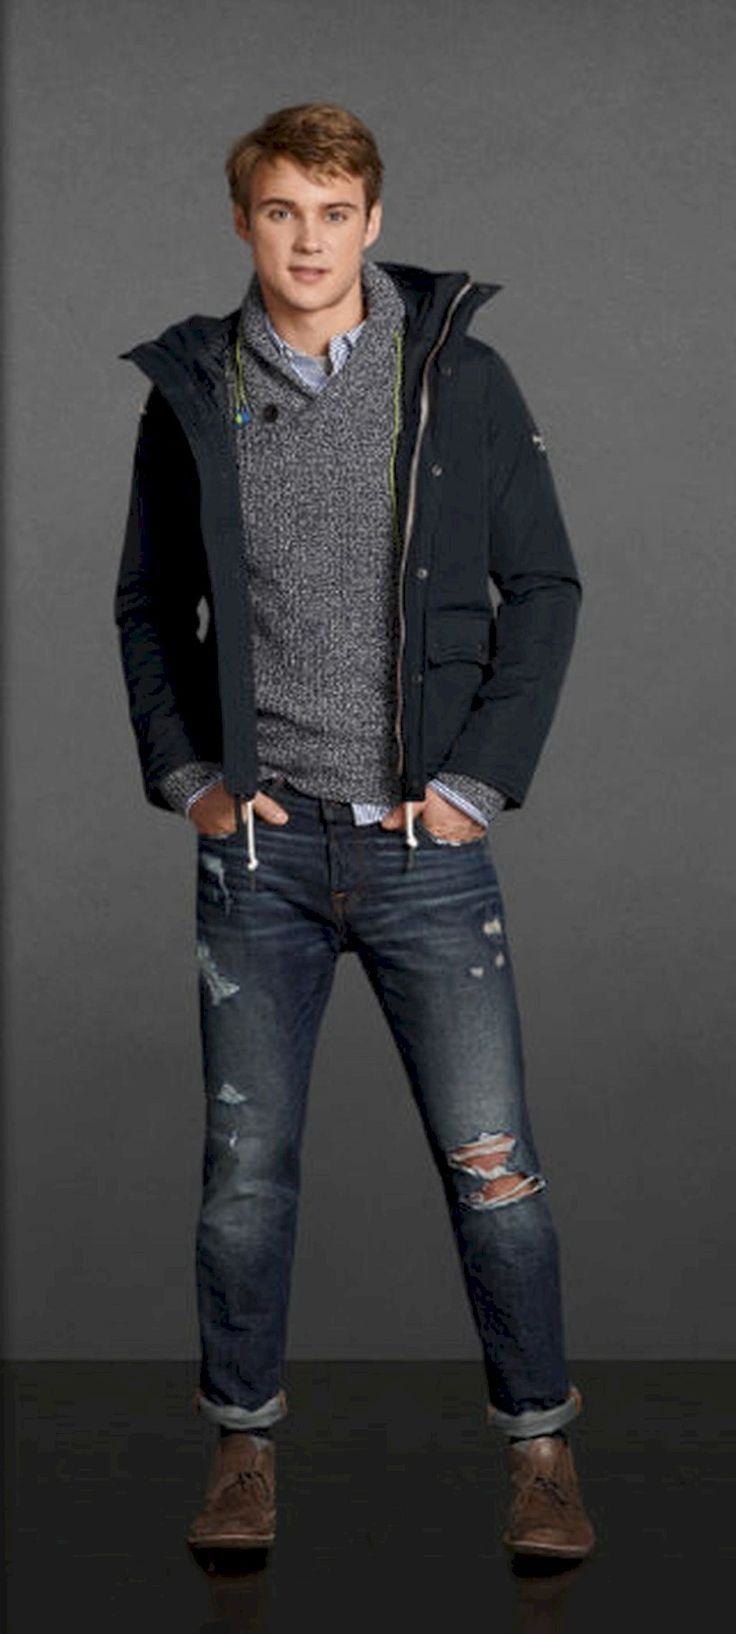 awesome 36 Men's Fashion Casual Jeans Outfits https://attirepin.com/2018/02/18/36-mens-fashion-casual-jeans-outfits/